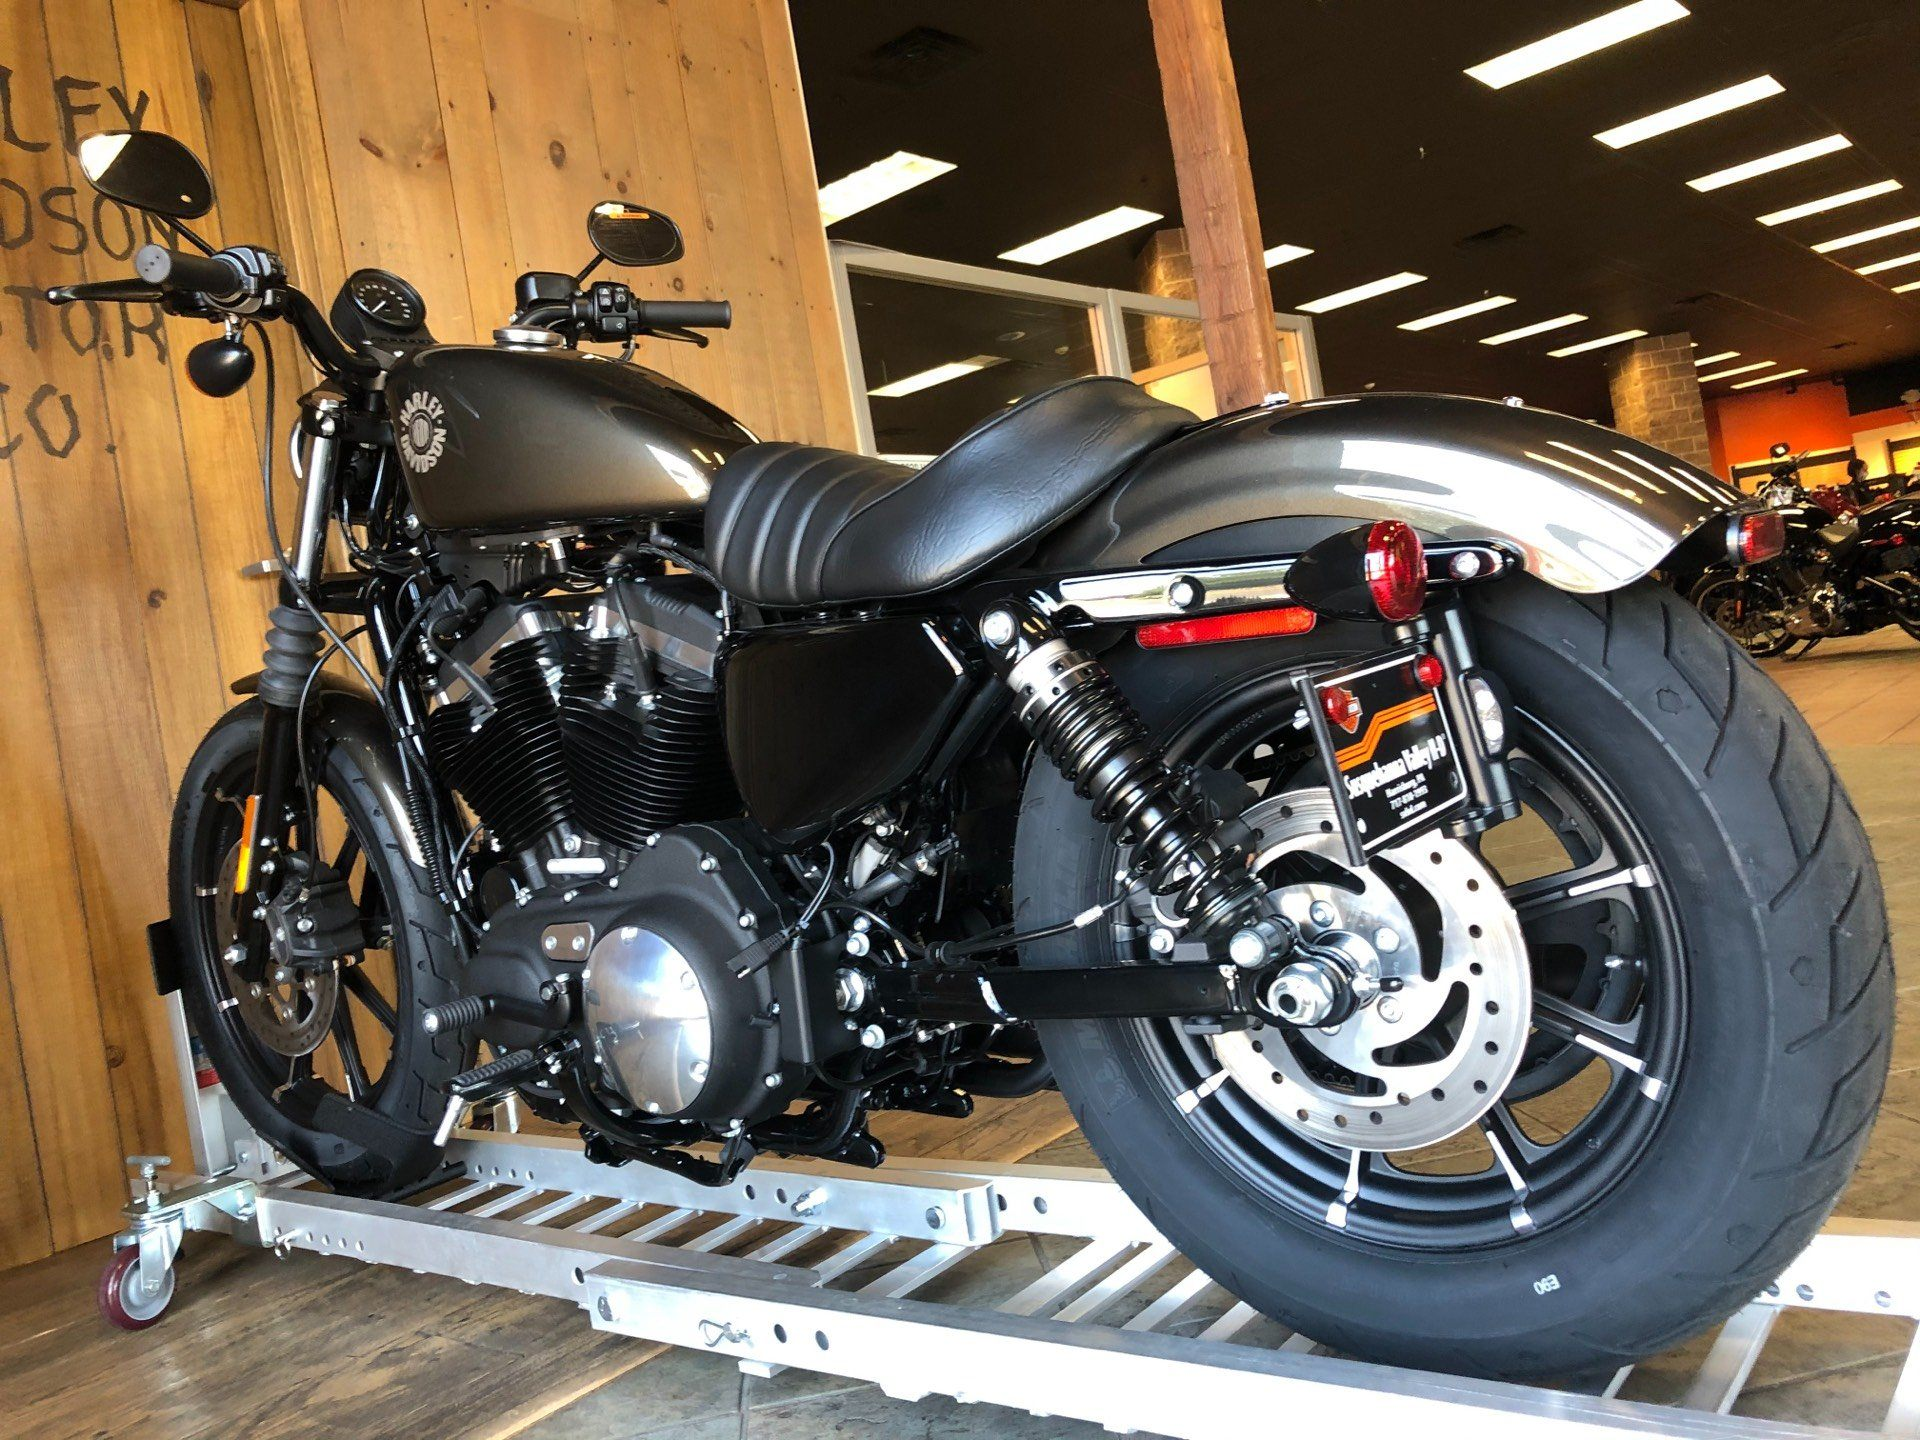 2020 Harley-Davidson Sportster Iron 883 in Harrisburg, Pennsylvania - Photo 6